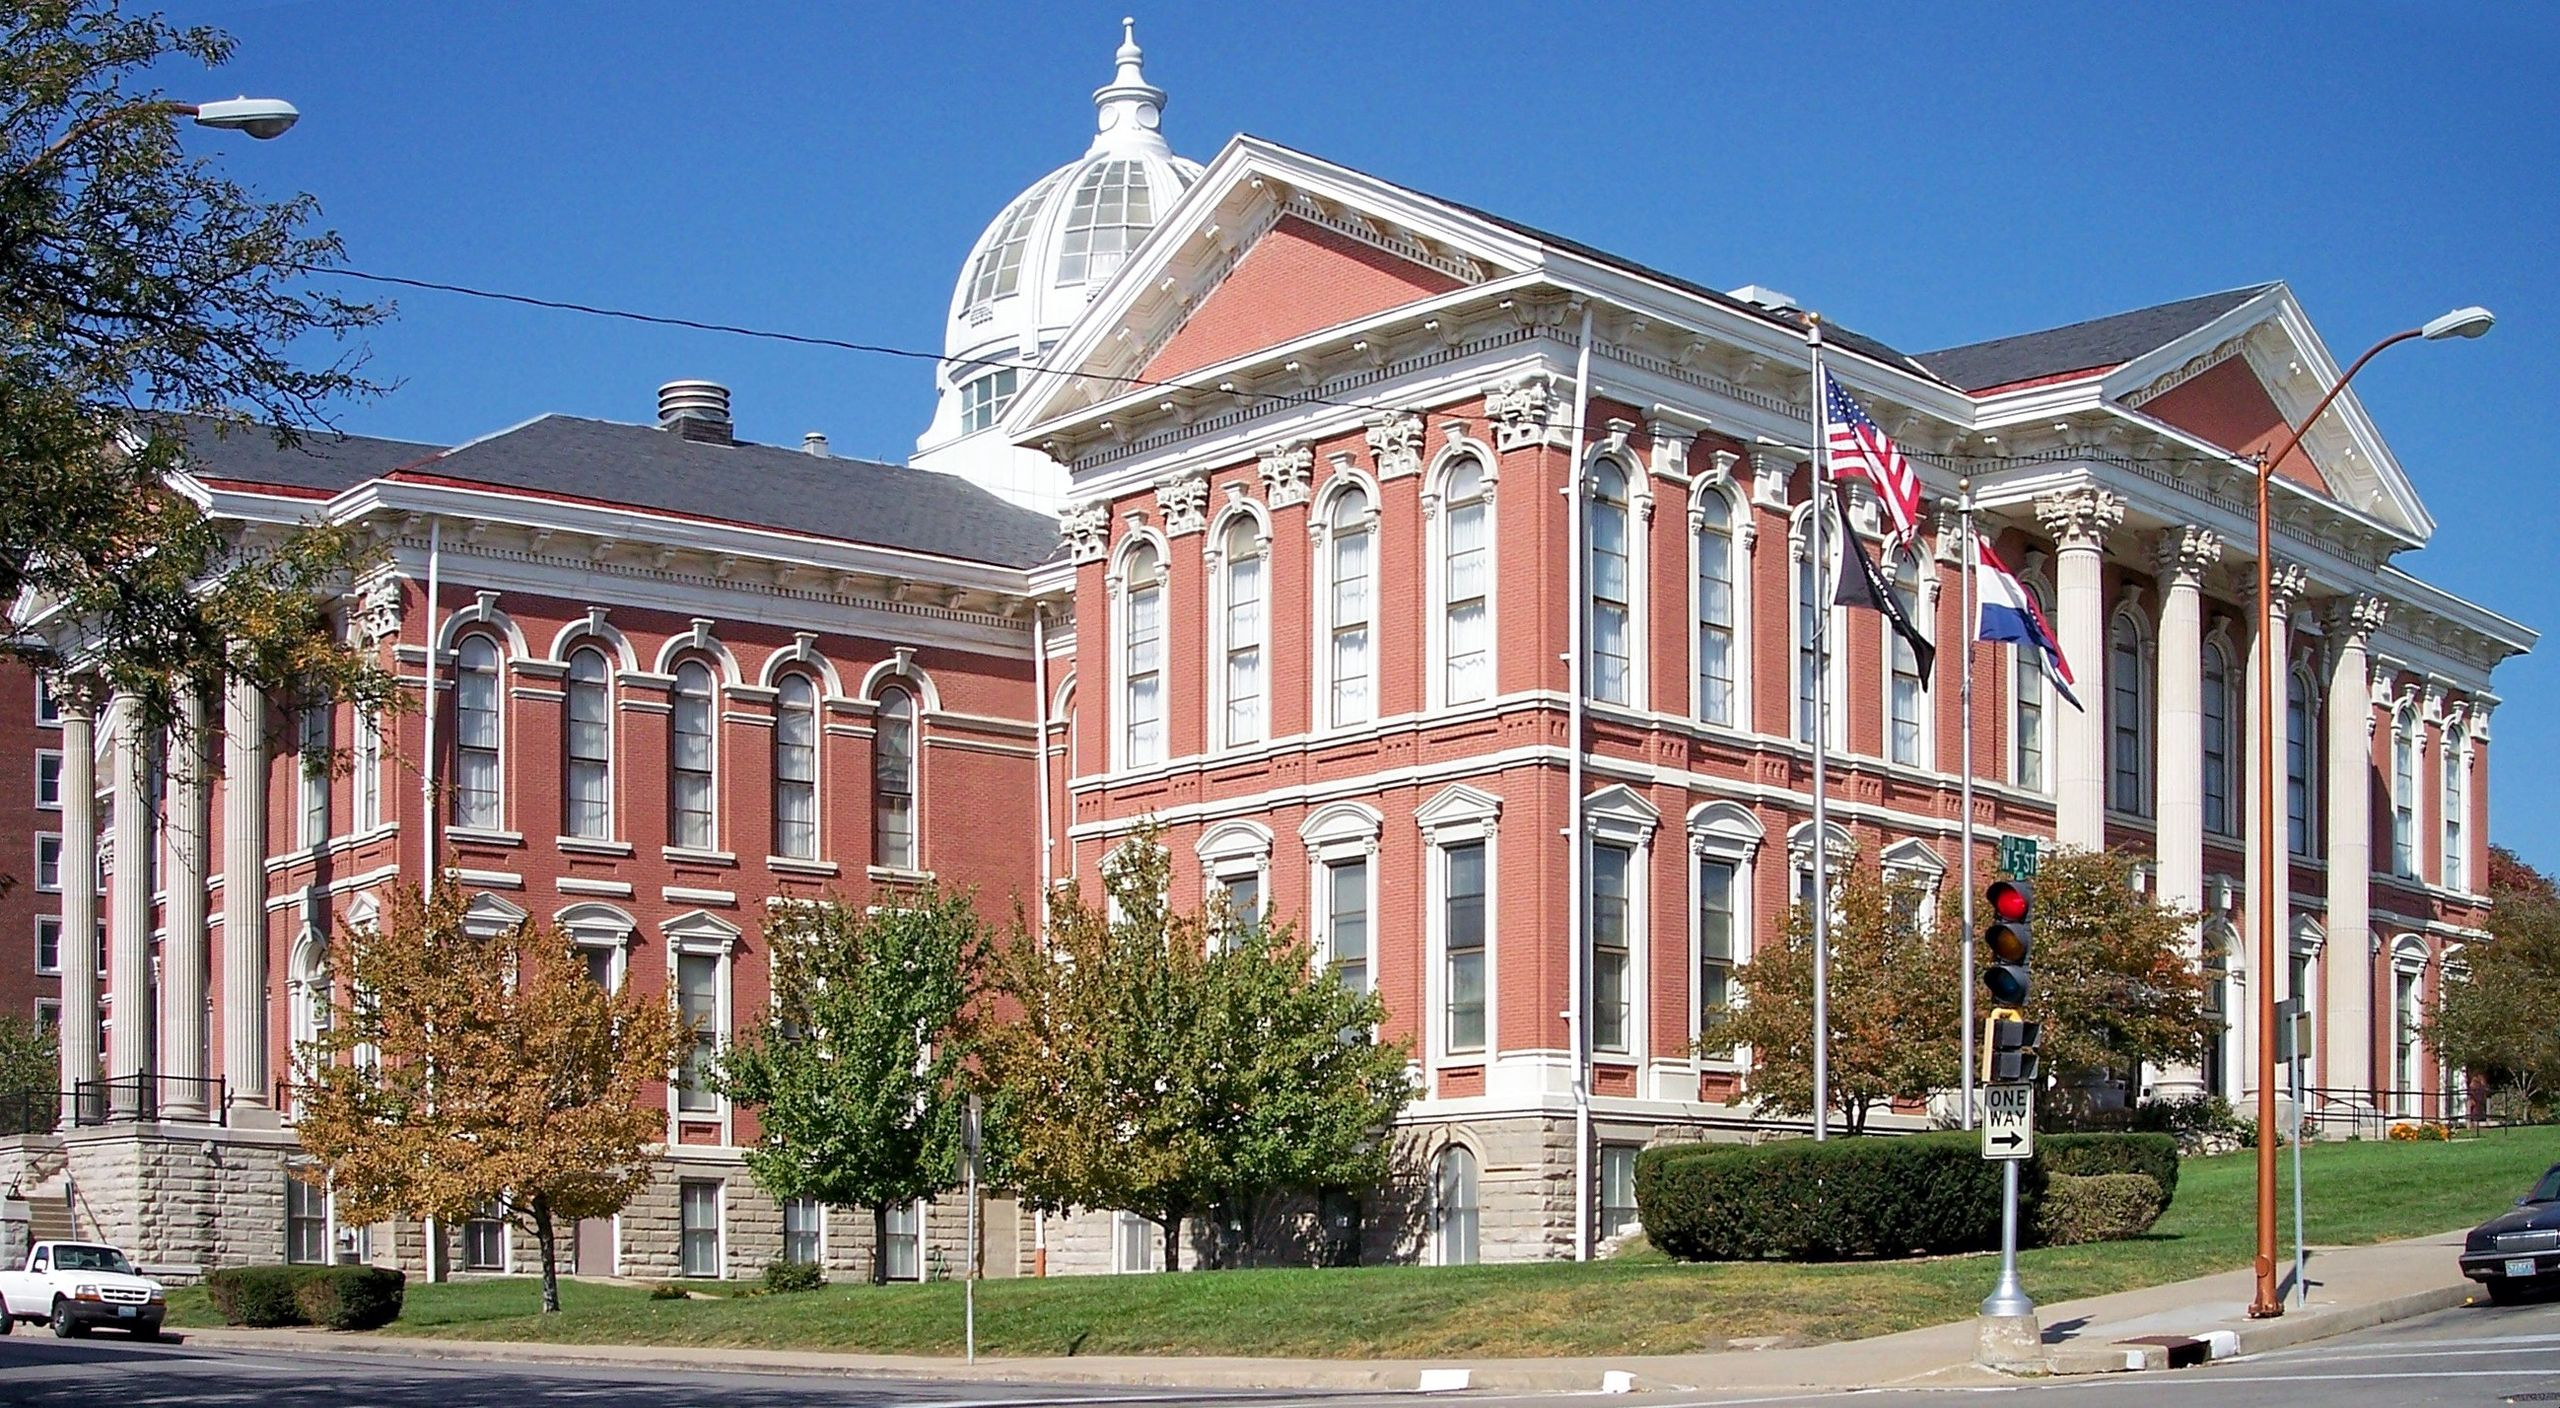 Buchanan_County_Courthouse_St_Joseph_Missouri